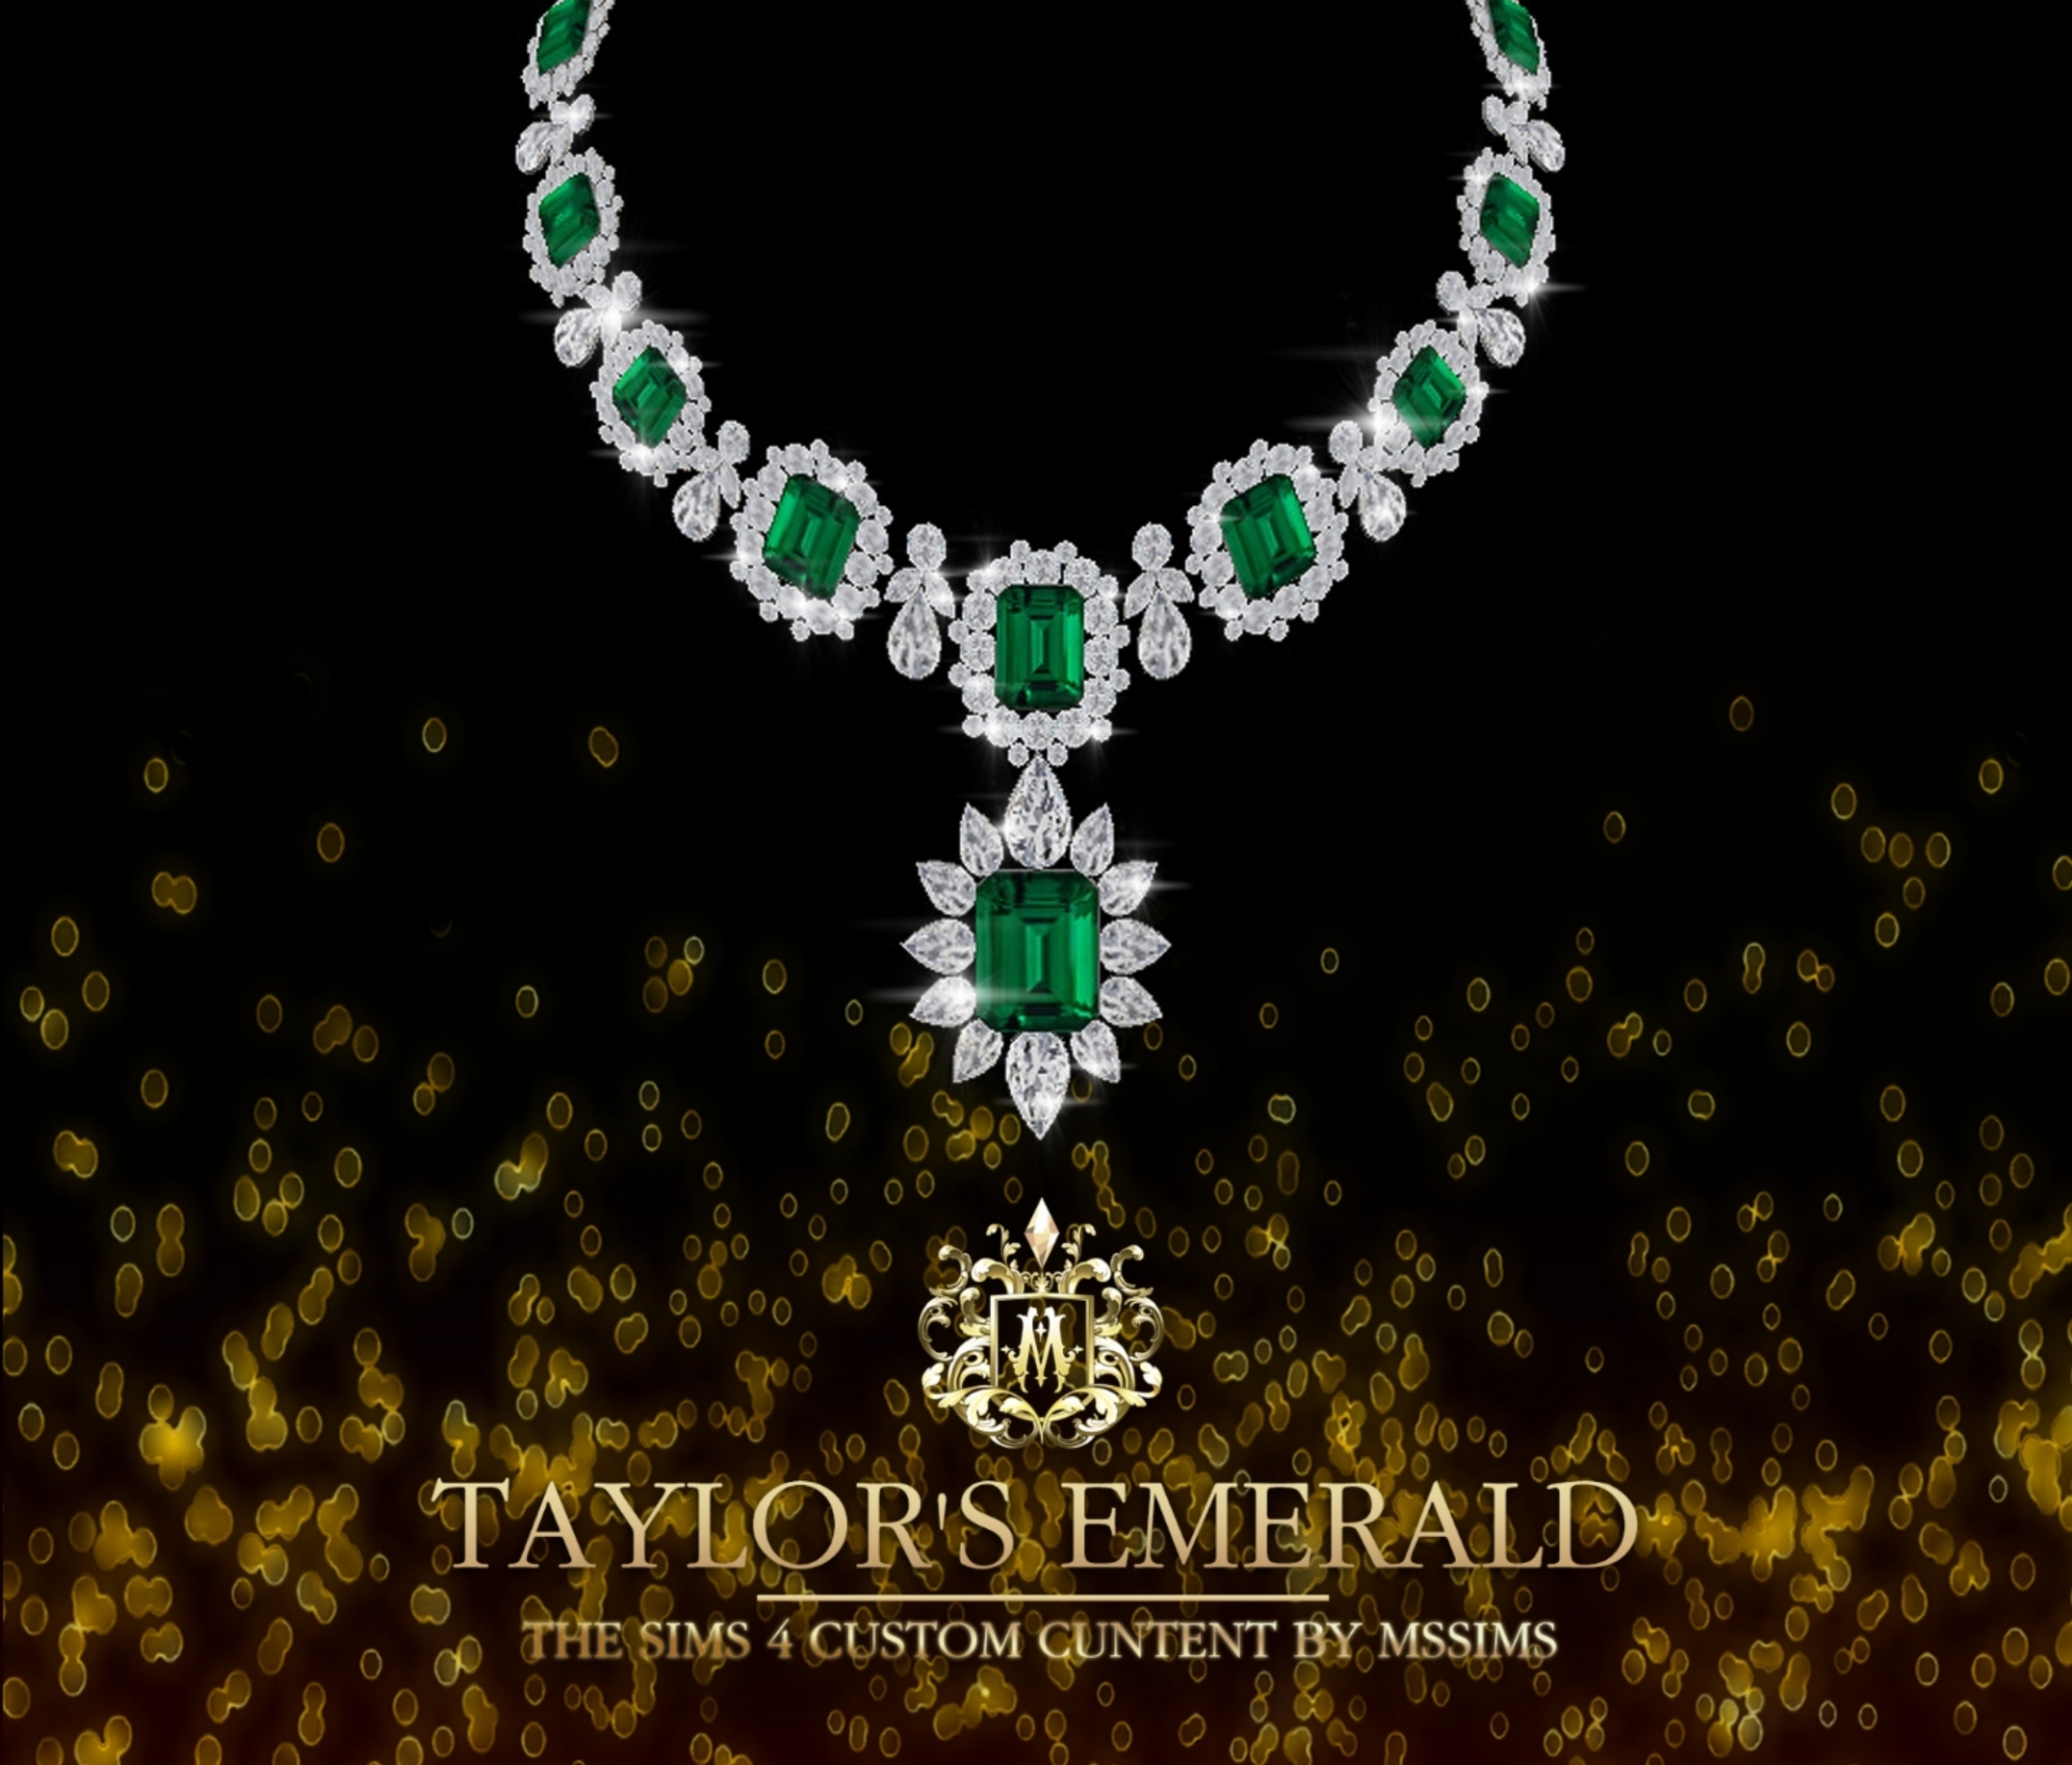 Pt-taylor-s-emerald-necklace by MSSIMS